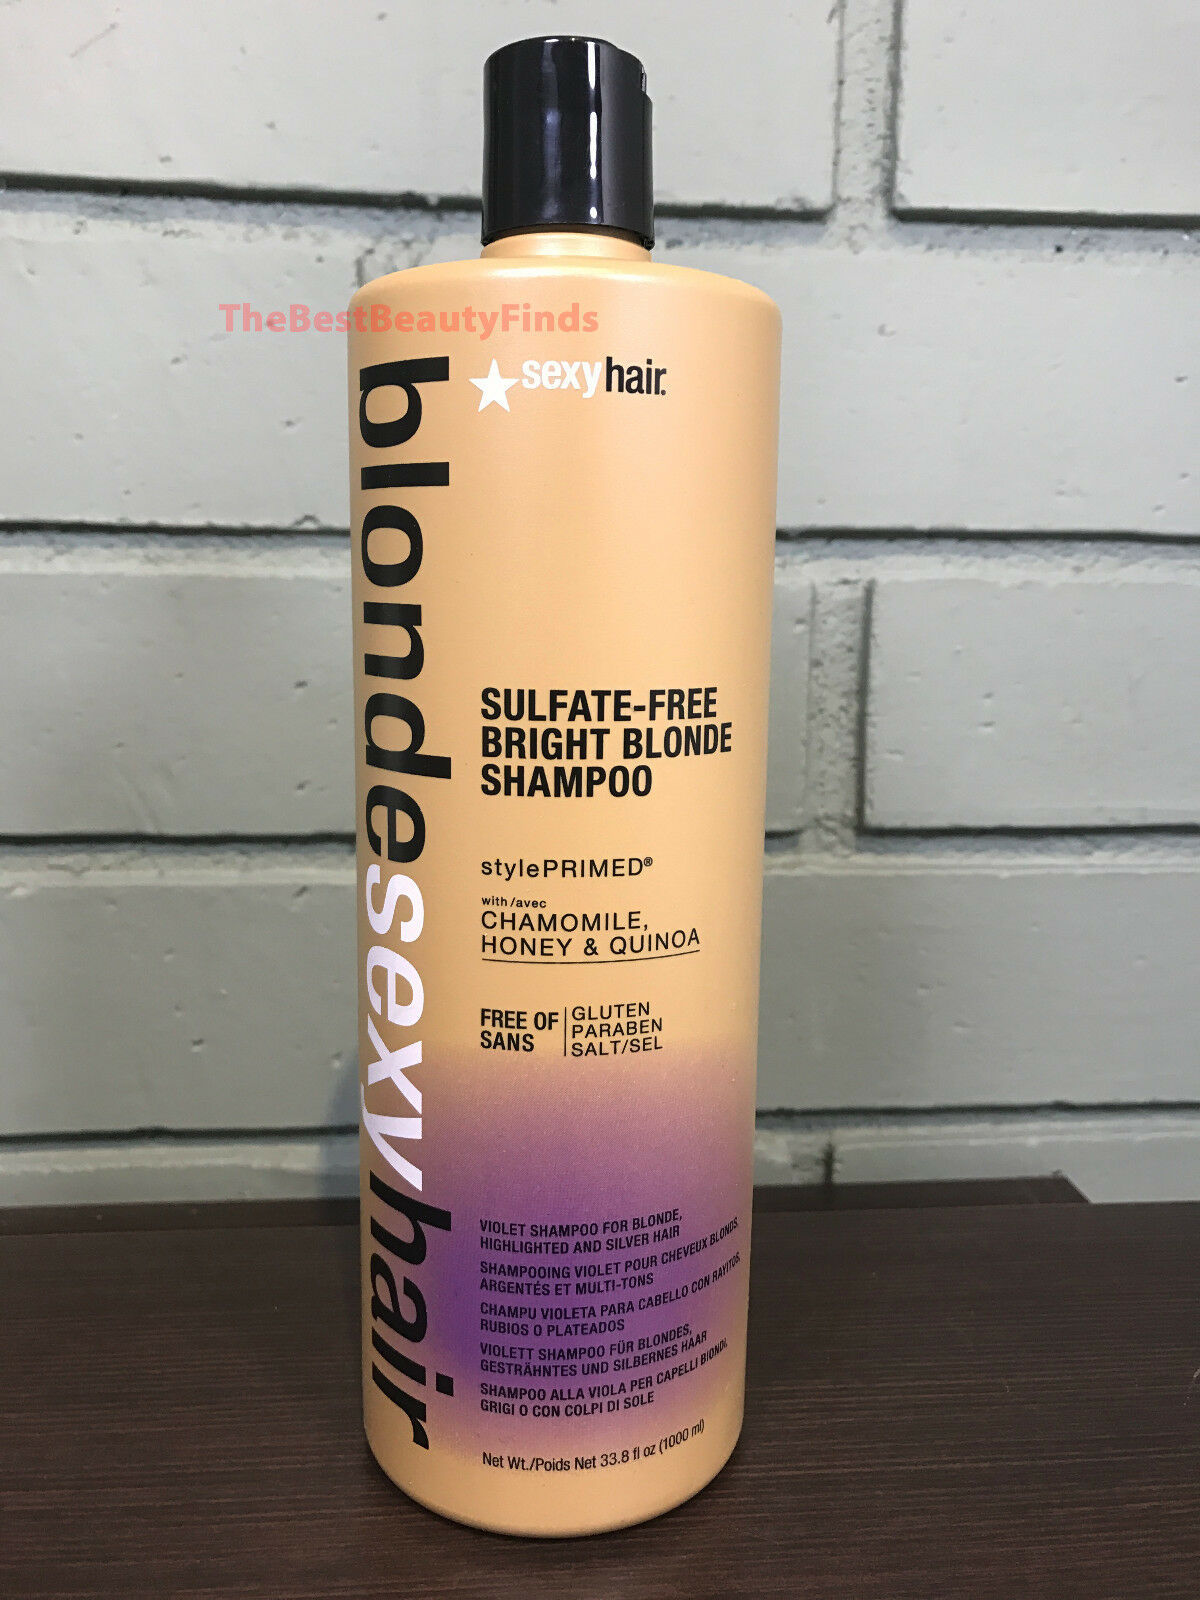 Blonde Sexy Hair Sulfate-Free Bright Blonde Shampoo 33.8oz LITER! Free Shipping!